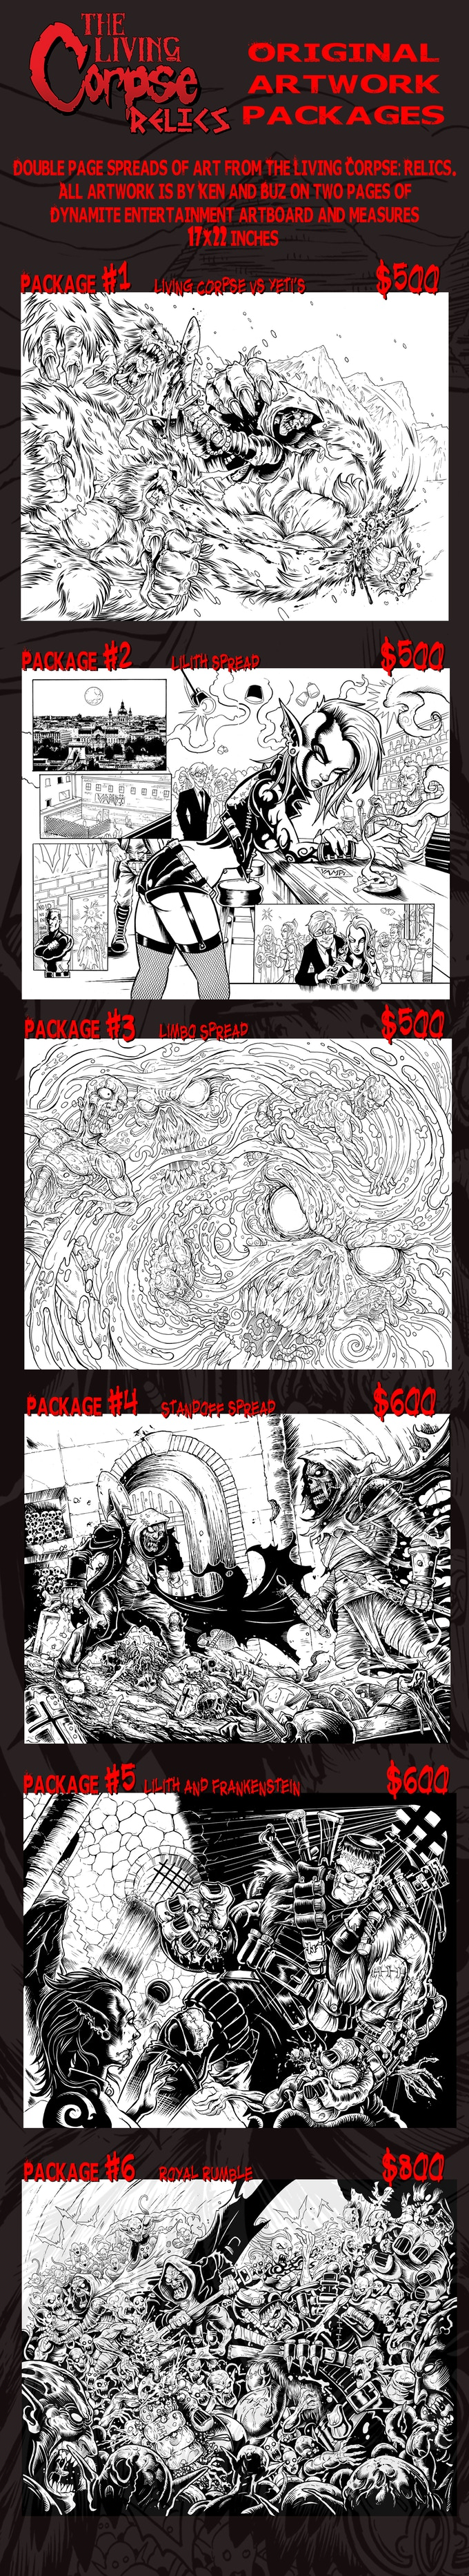 Living Corpse double page spreads by Ken and Buz